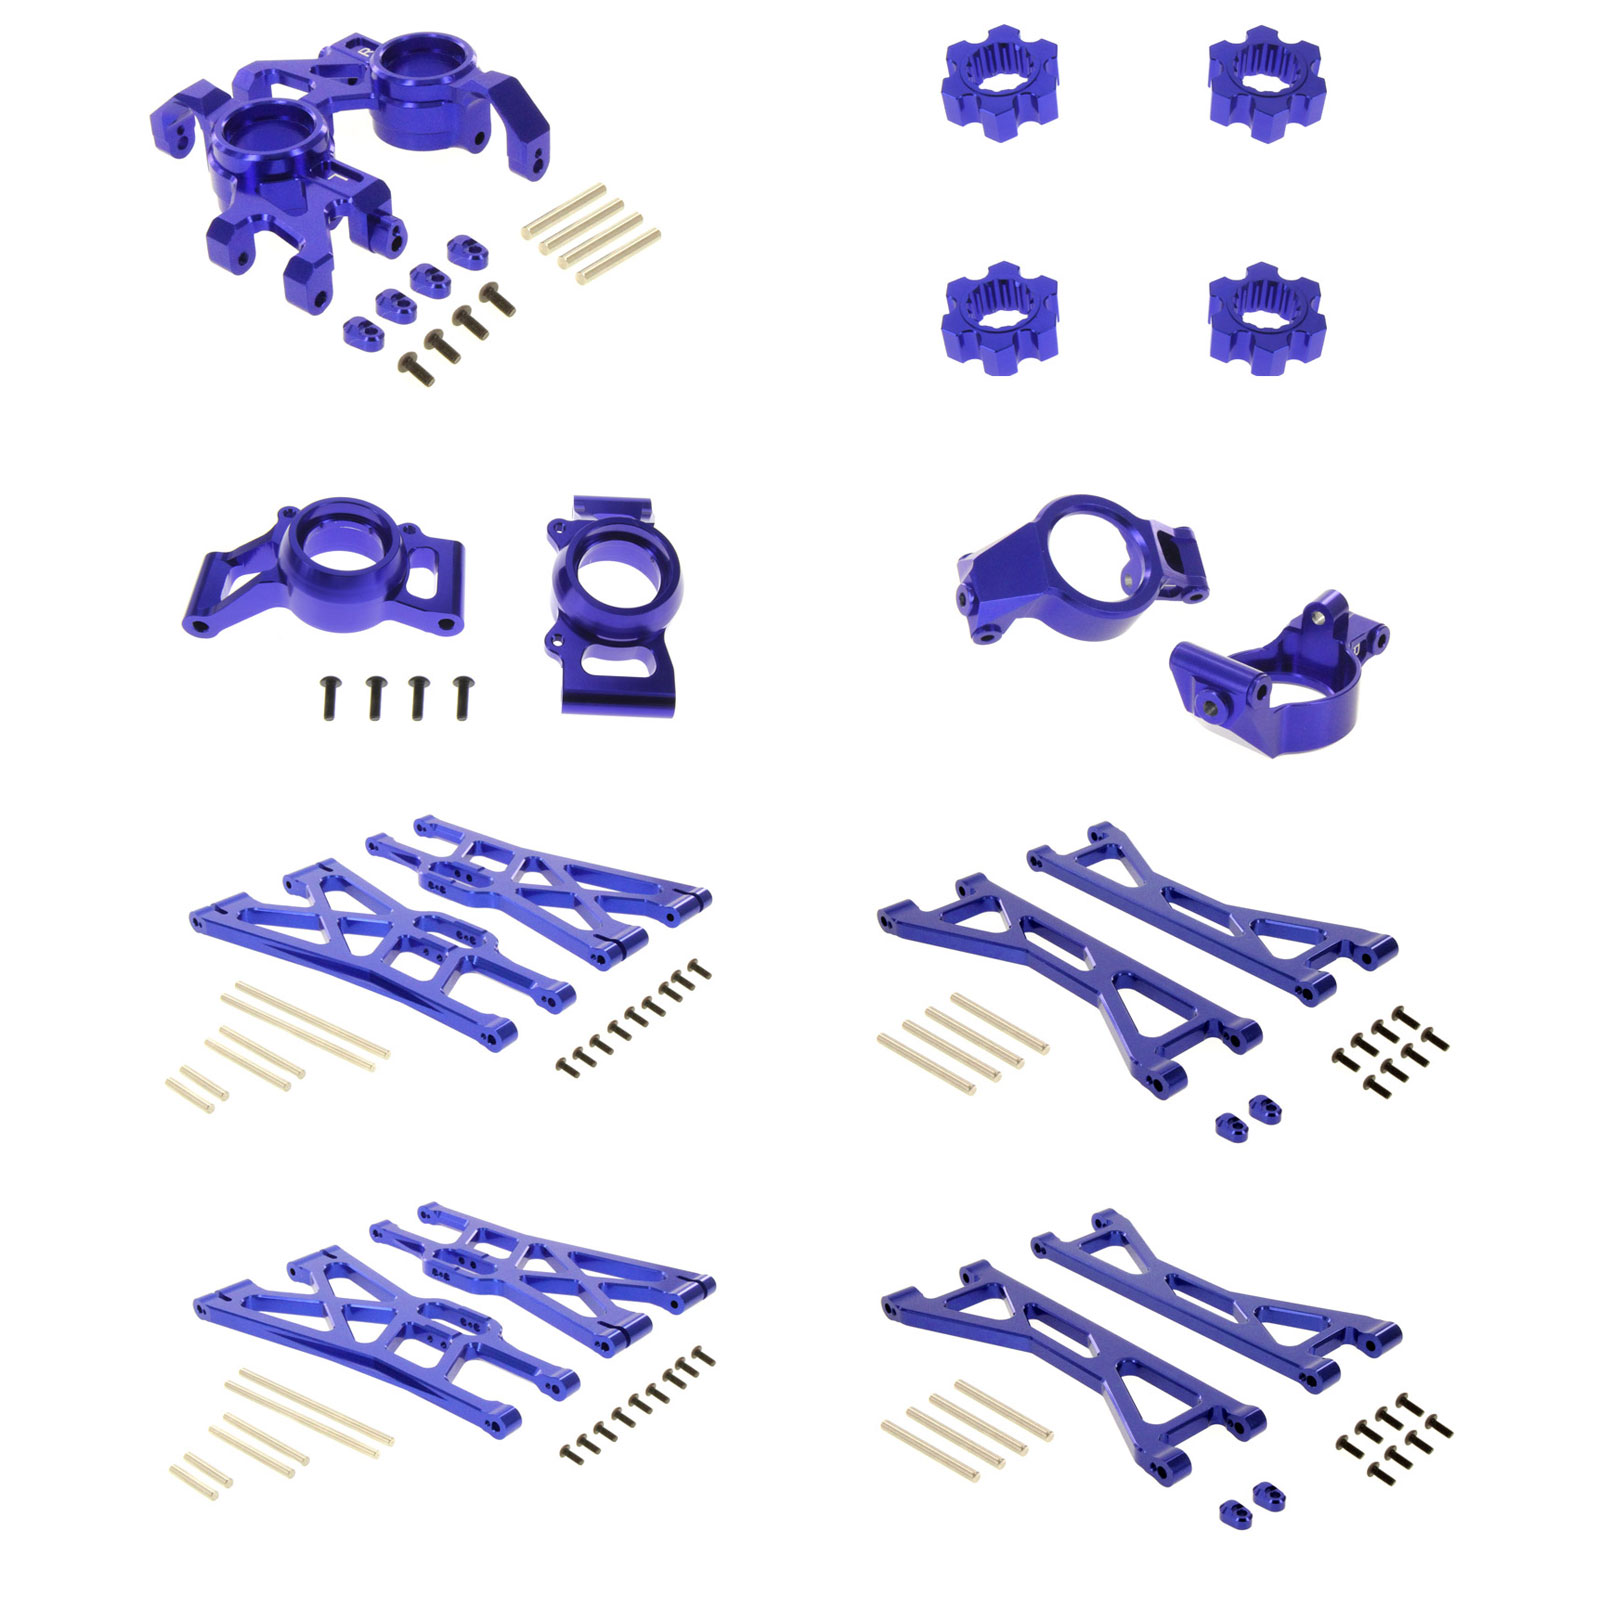 Traxxas X-Maxx Ultimate Alloy Upgrade Kit by Atomik RC Blue by Atomik RC